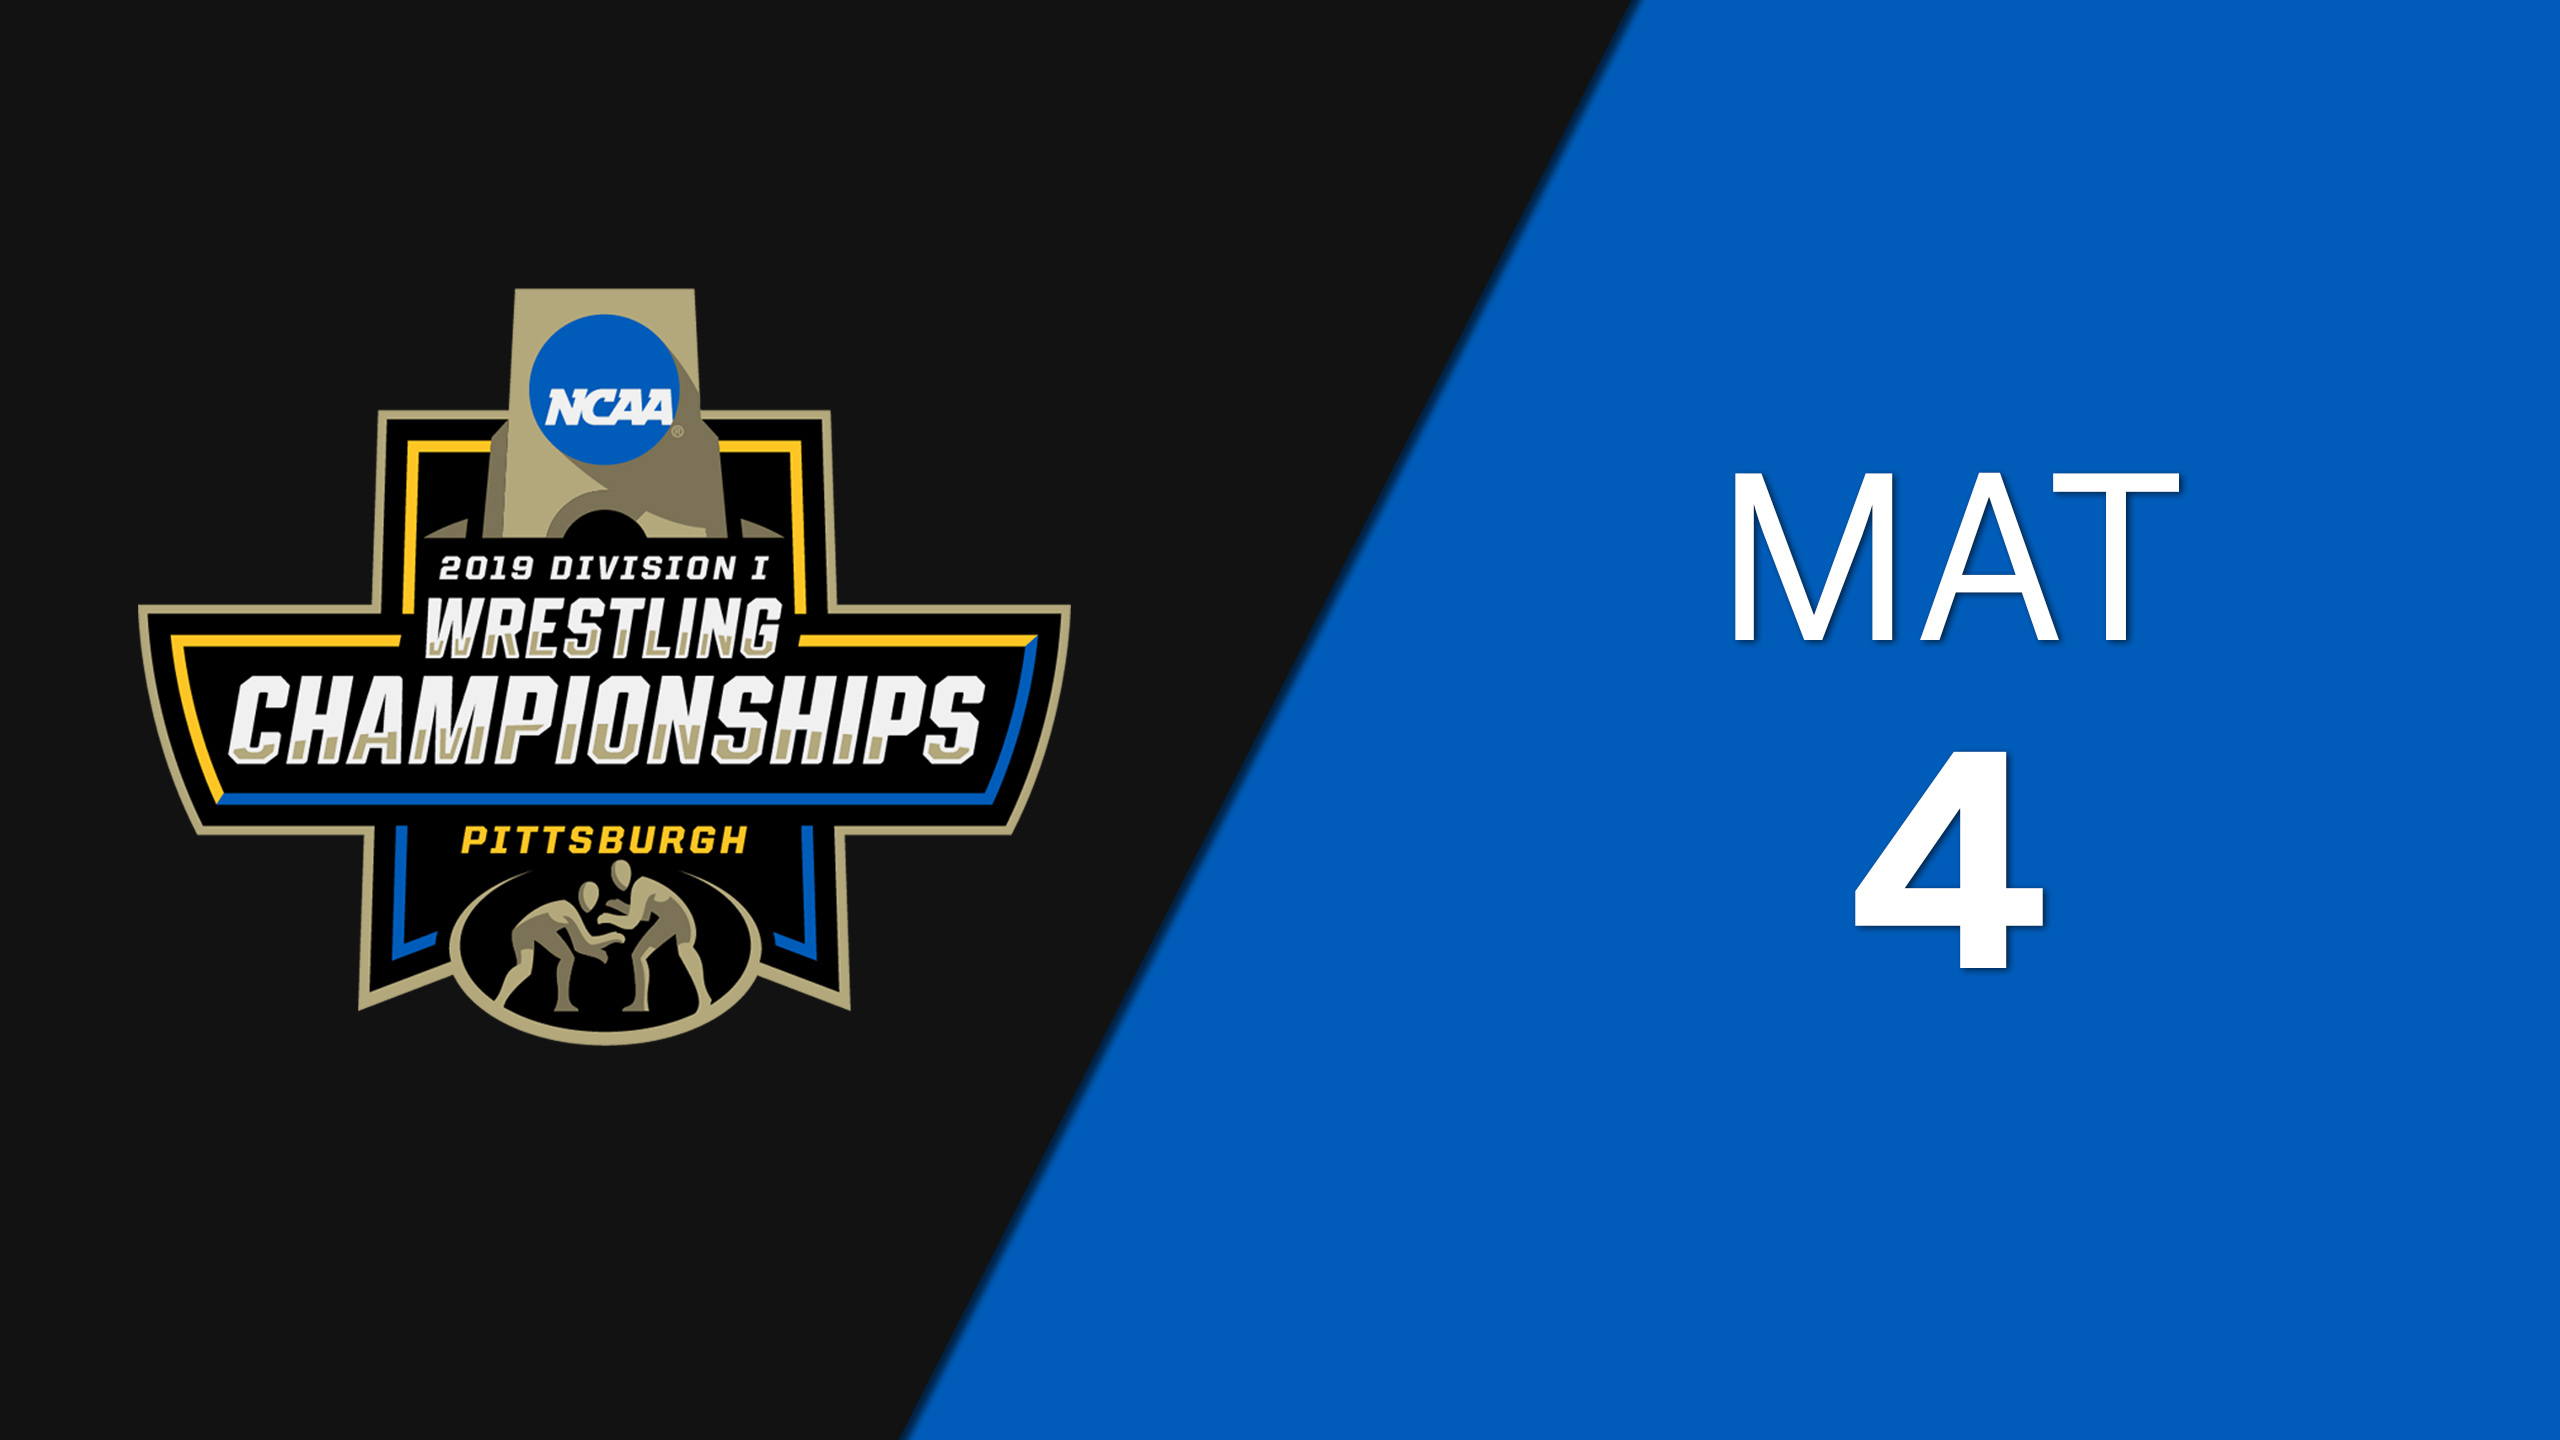 NCAA Wrestling Championship (Mat 4, Second Round)